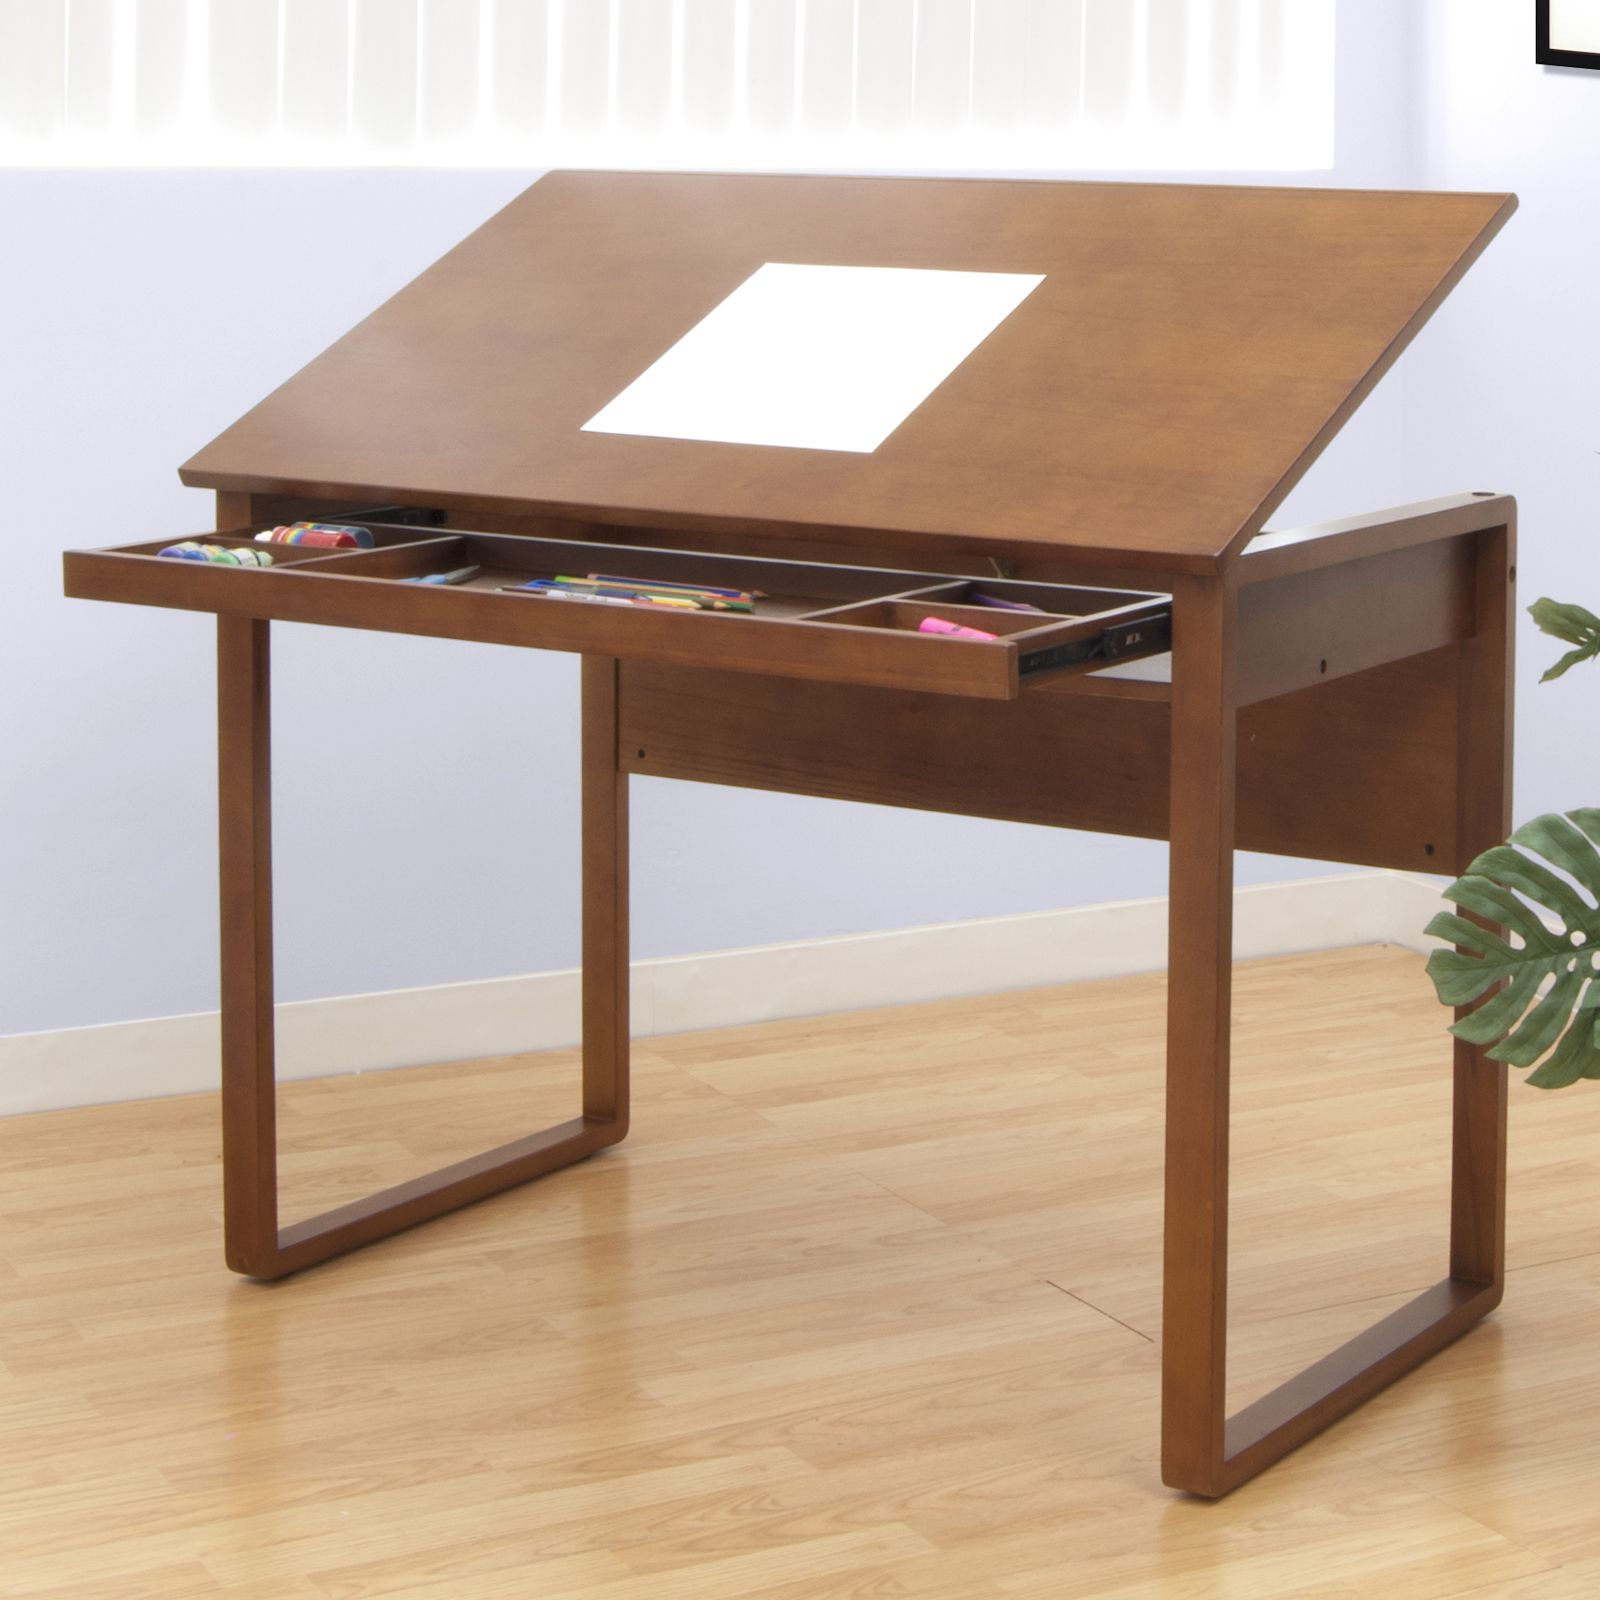 Drawing Lines In A Table : Ponderosa wooden drafting table by studio designs warm